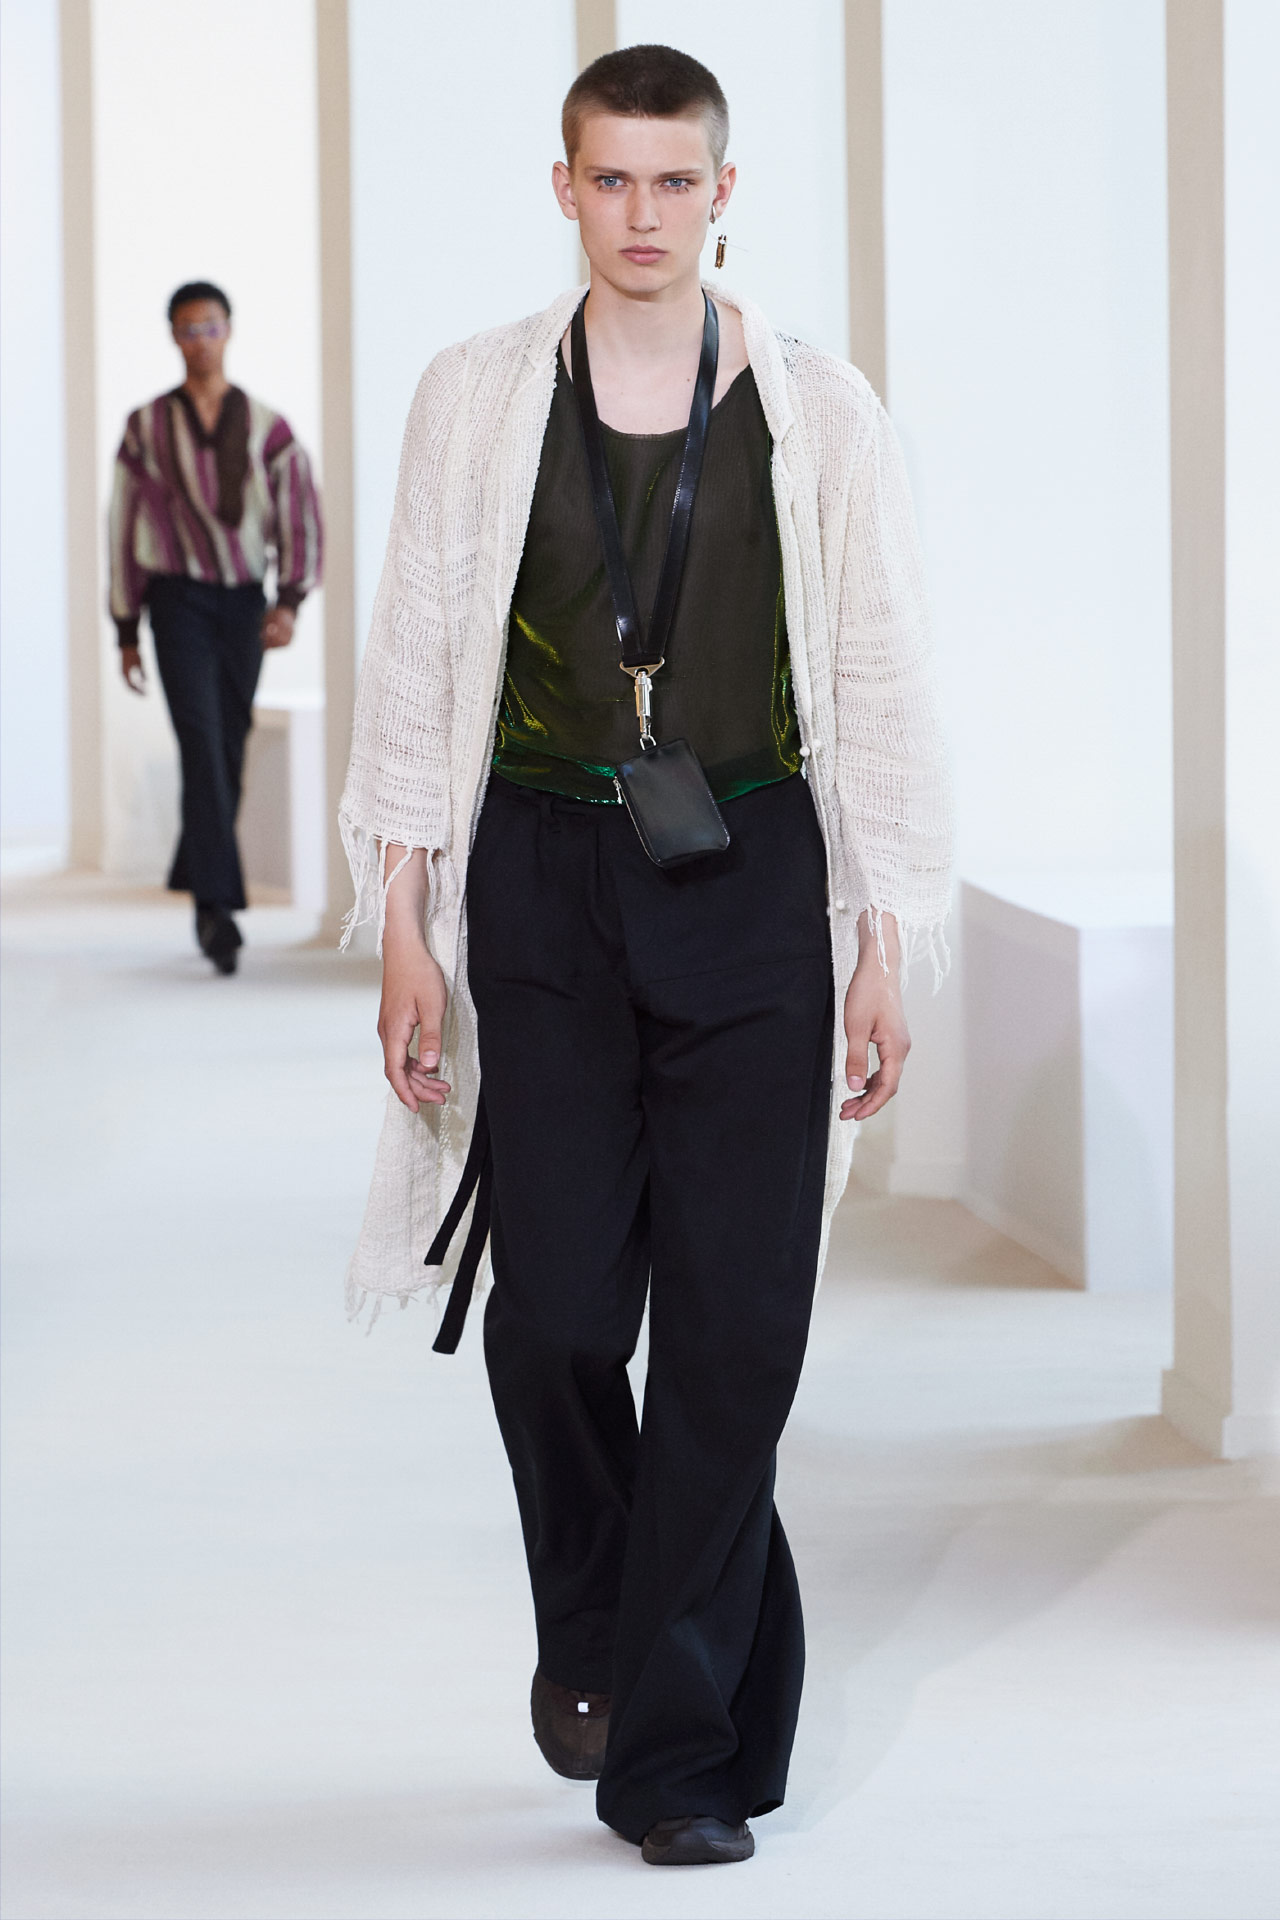 Look Spring/Summer, image 23